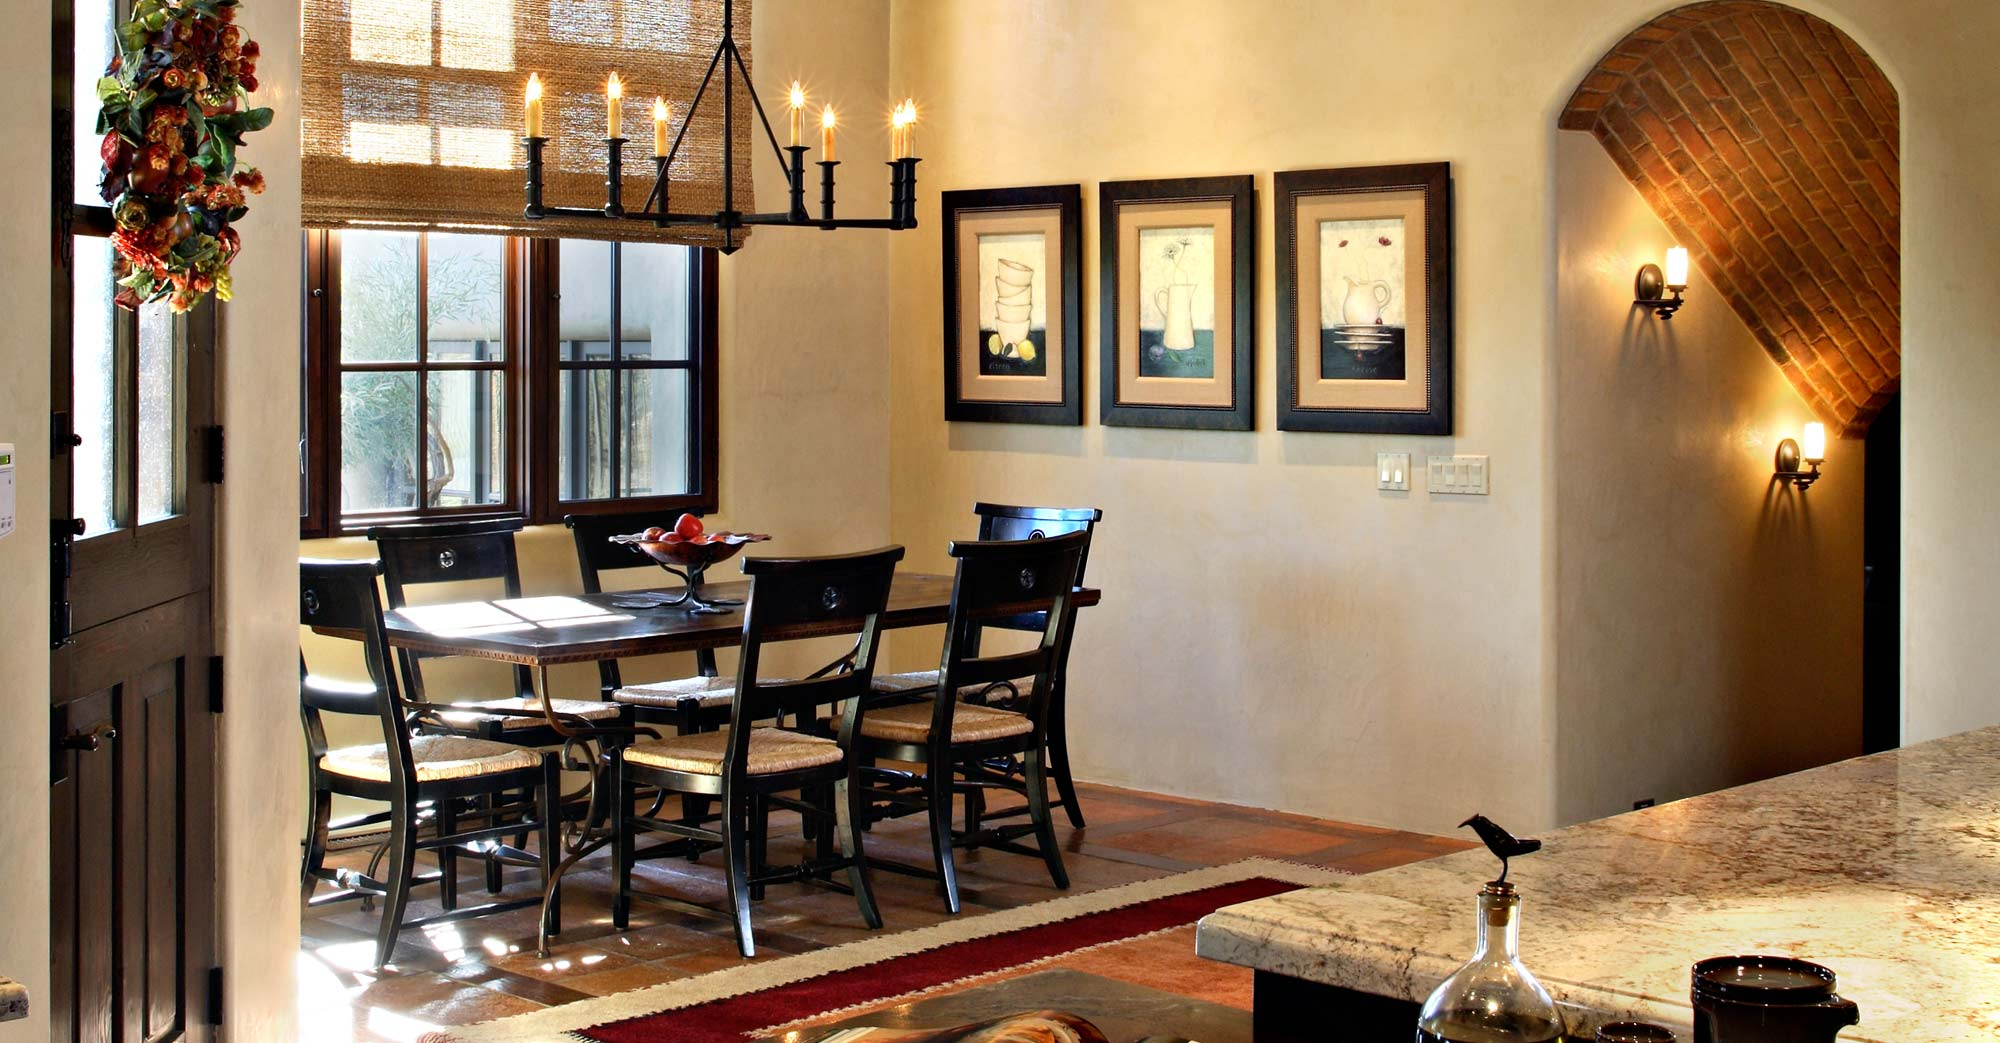 A Grand Design: What A Top Interior Designer Can Do For Your Family's Home